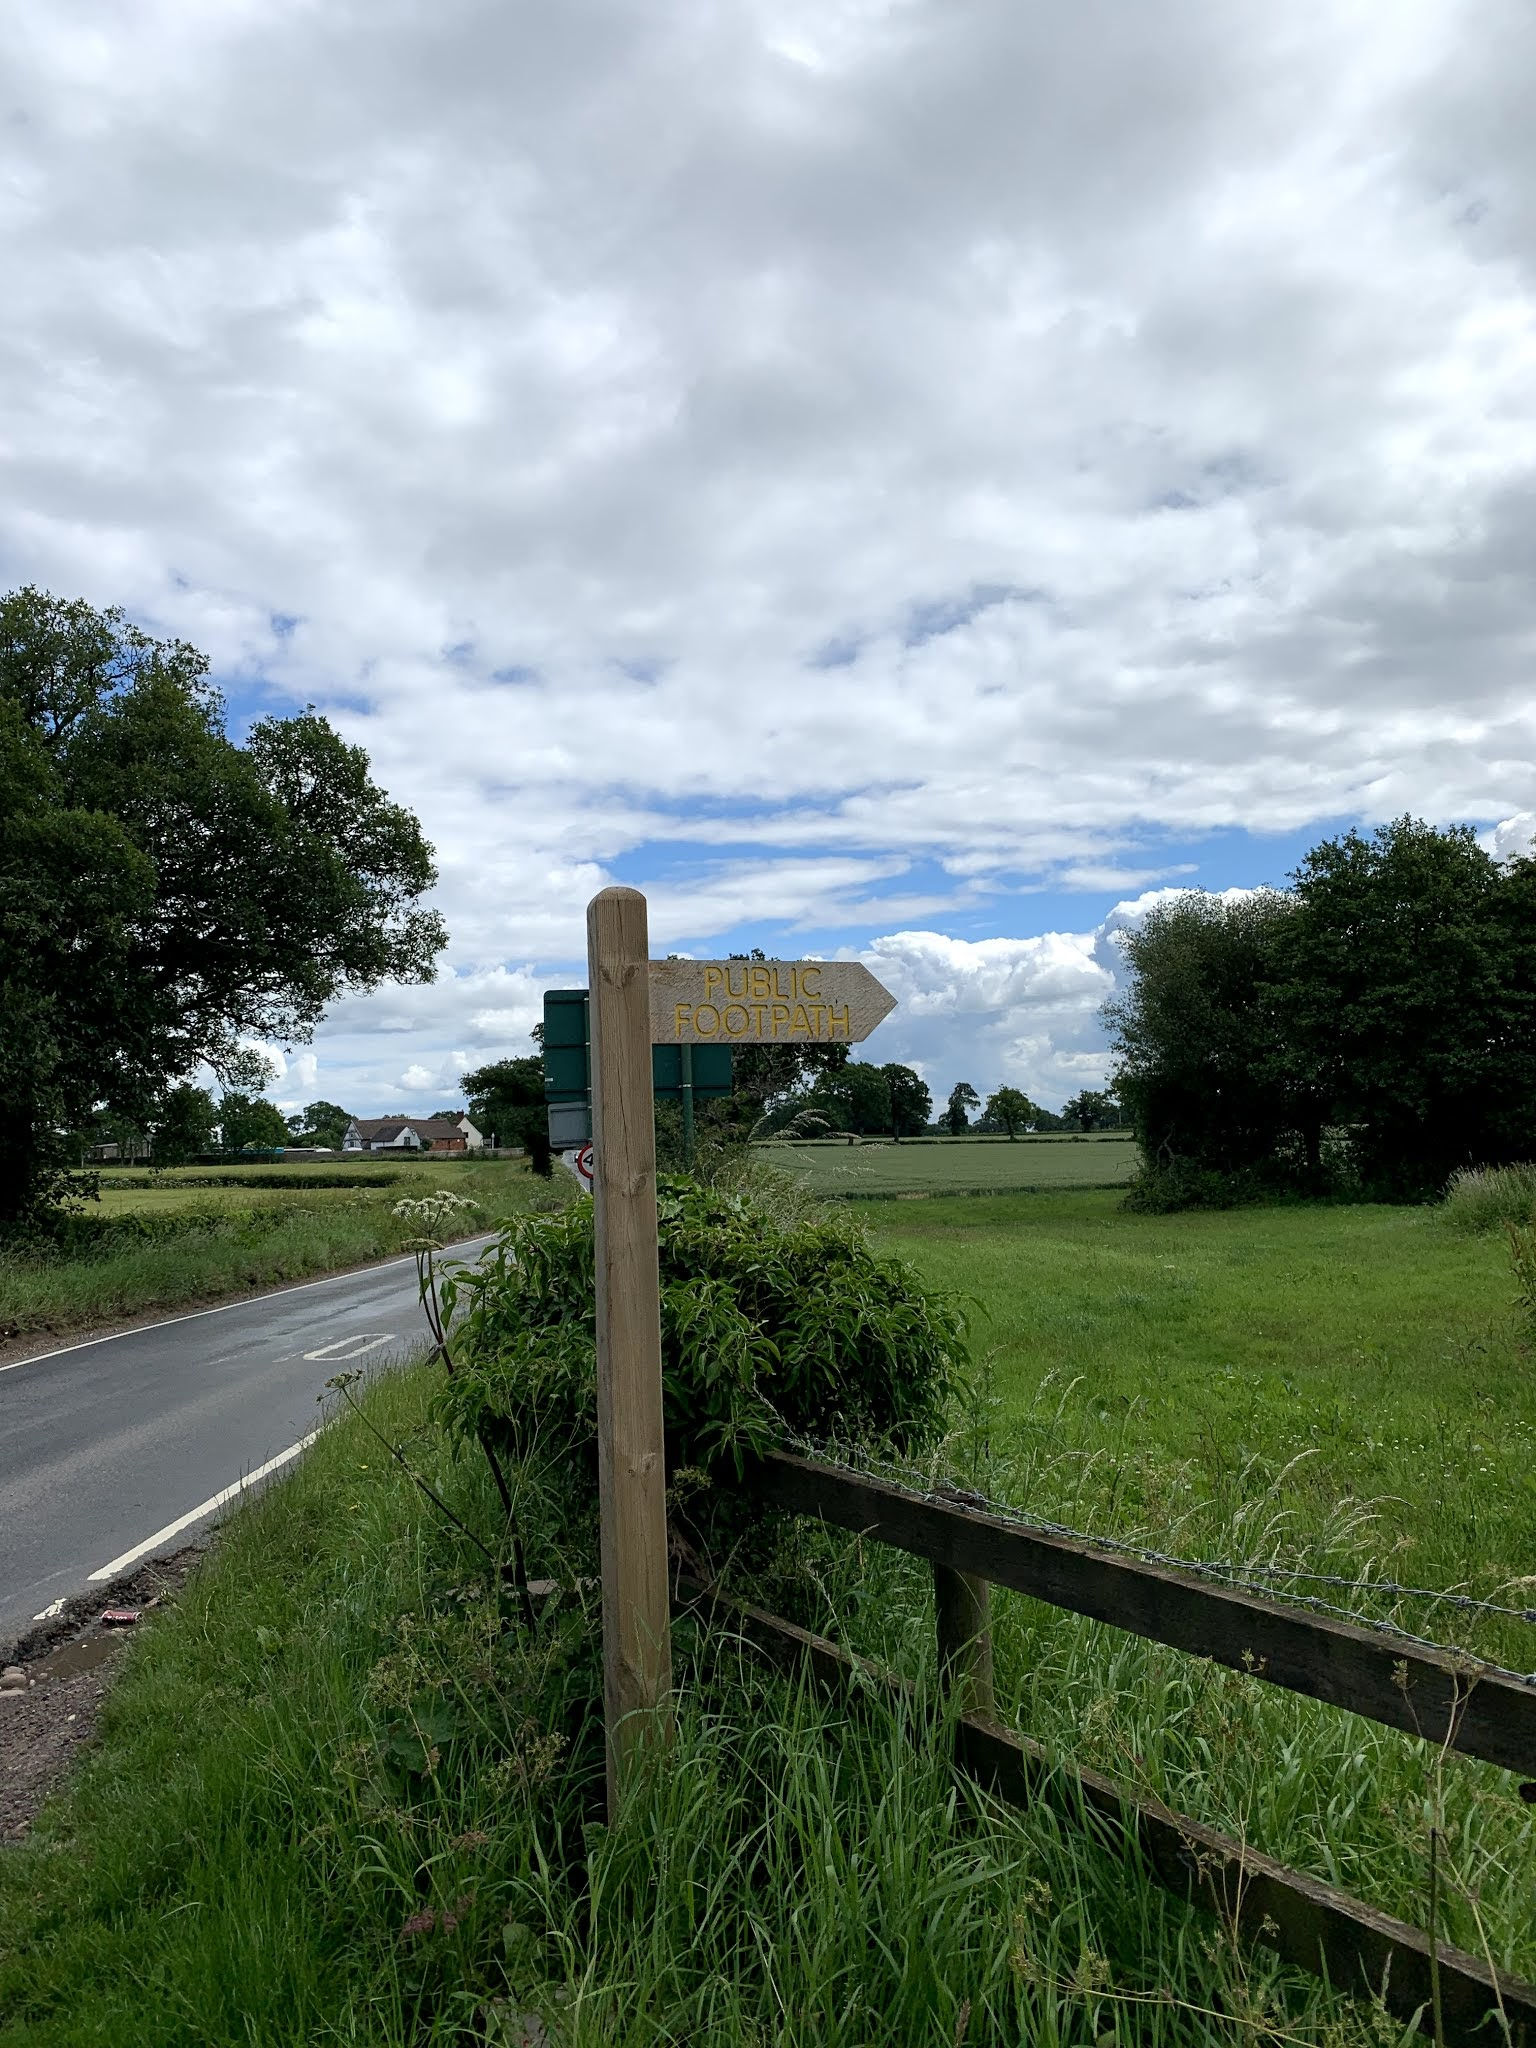 public footpath sign by road